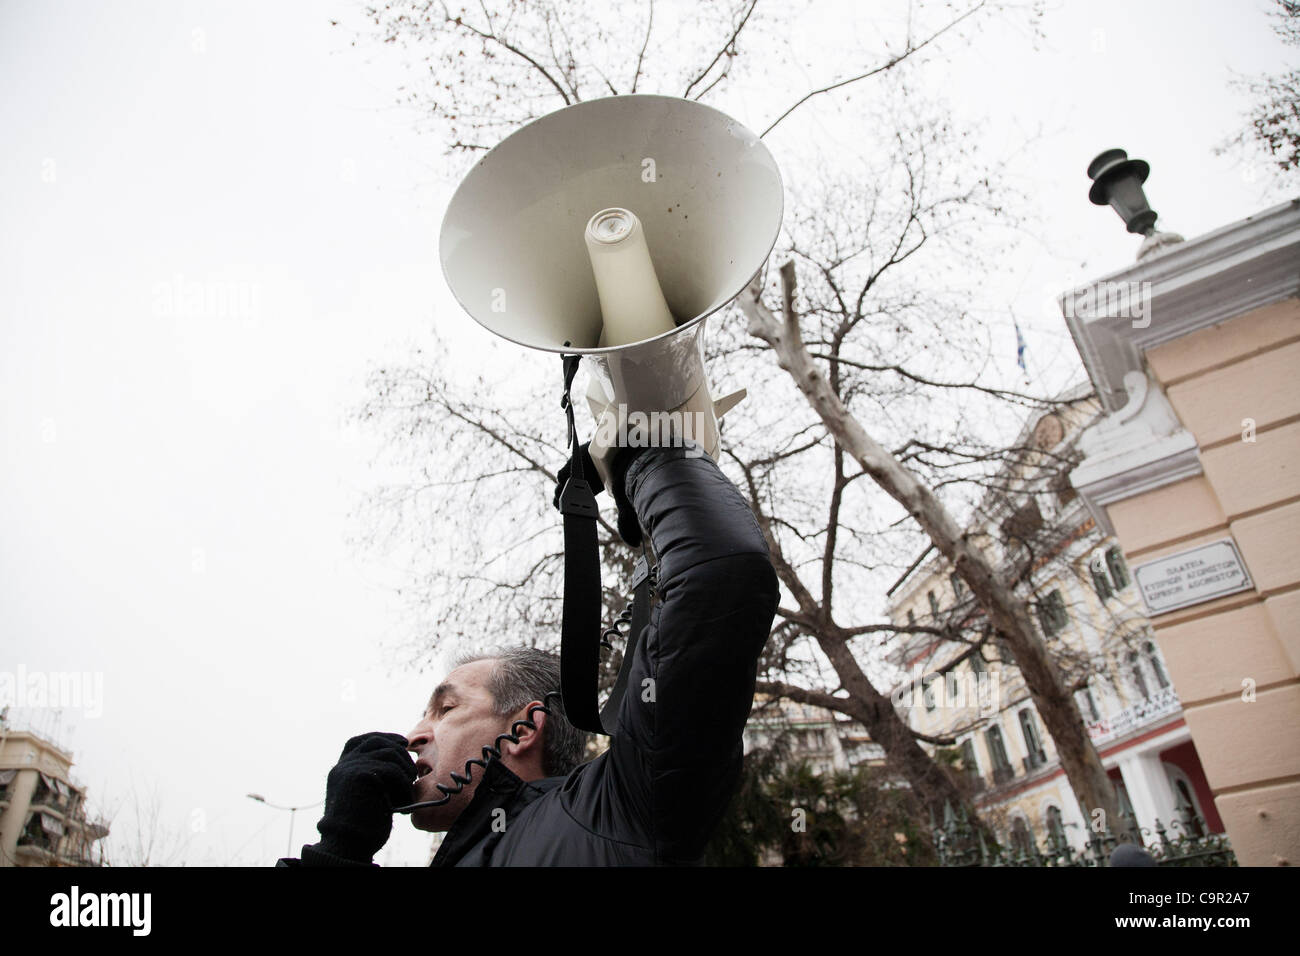 48-hour nationwide strike. Protests in Thessaloniki against the new stringent economic measures. 10th February 2012. - Stock Image